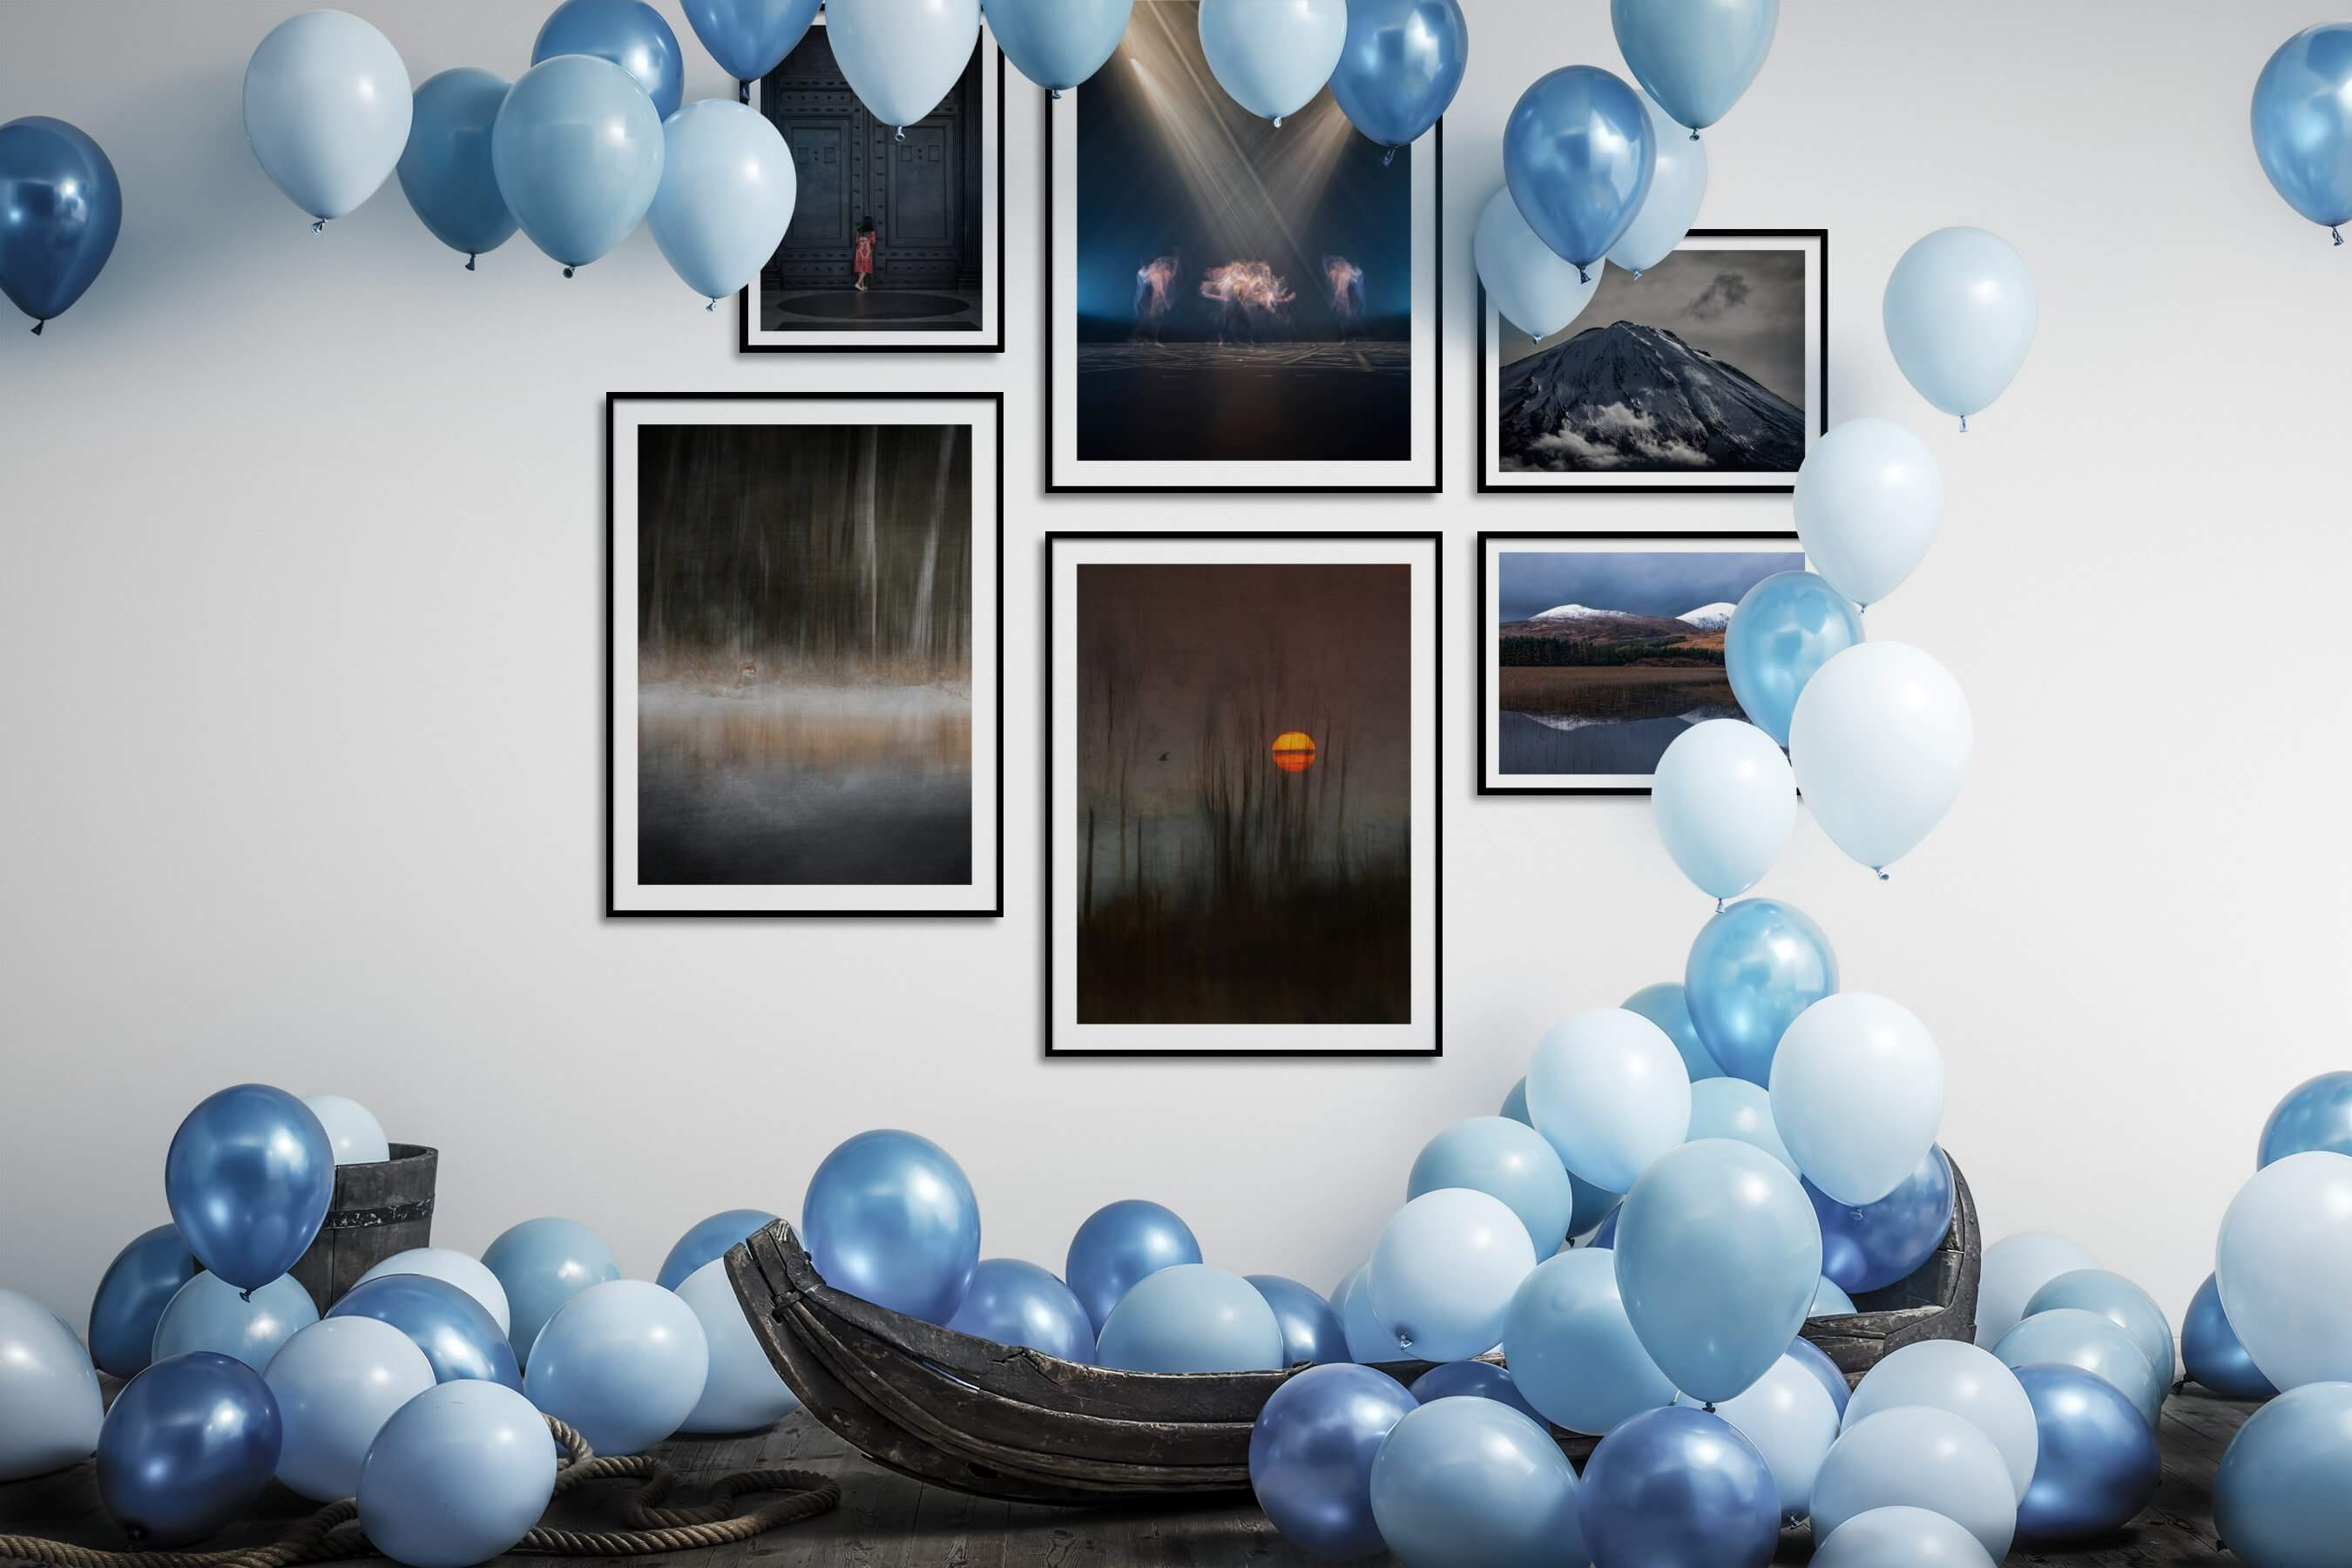 Gallery wall idea with six framed pictures arranged on a wall depicting For the Moderate, Animals, and Nature